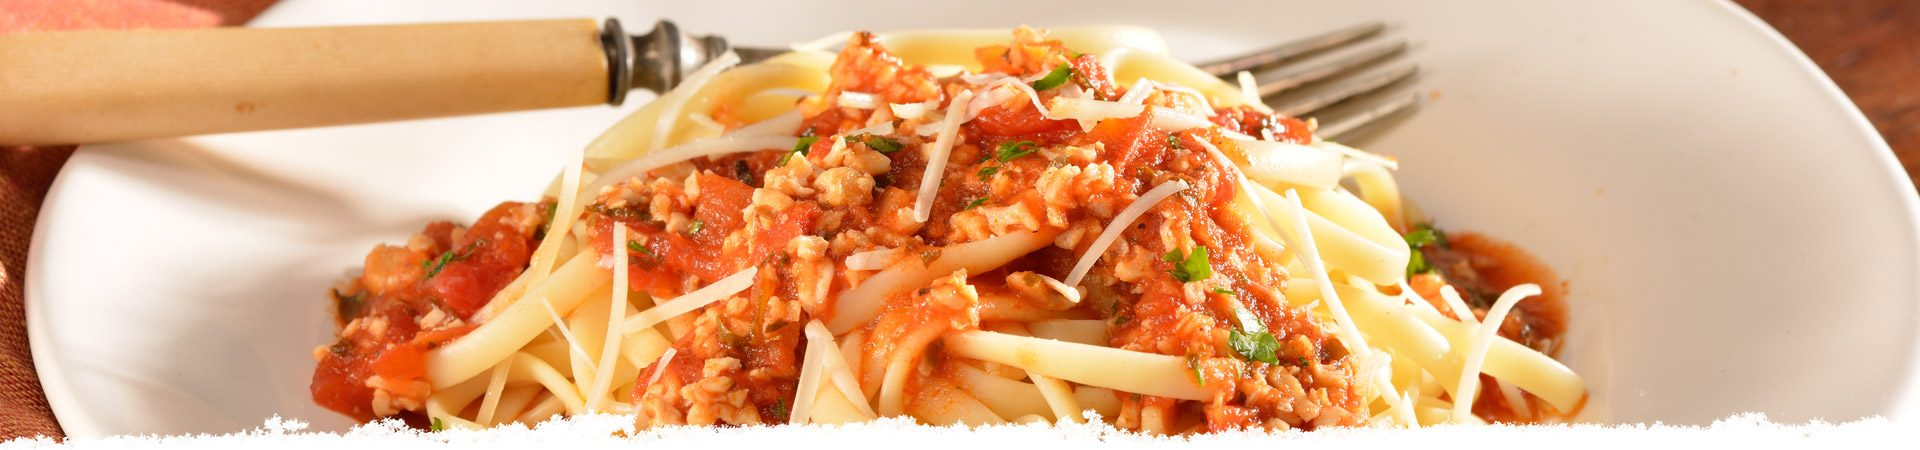 Bertolli Linguine with Red Clam Sauce